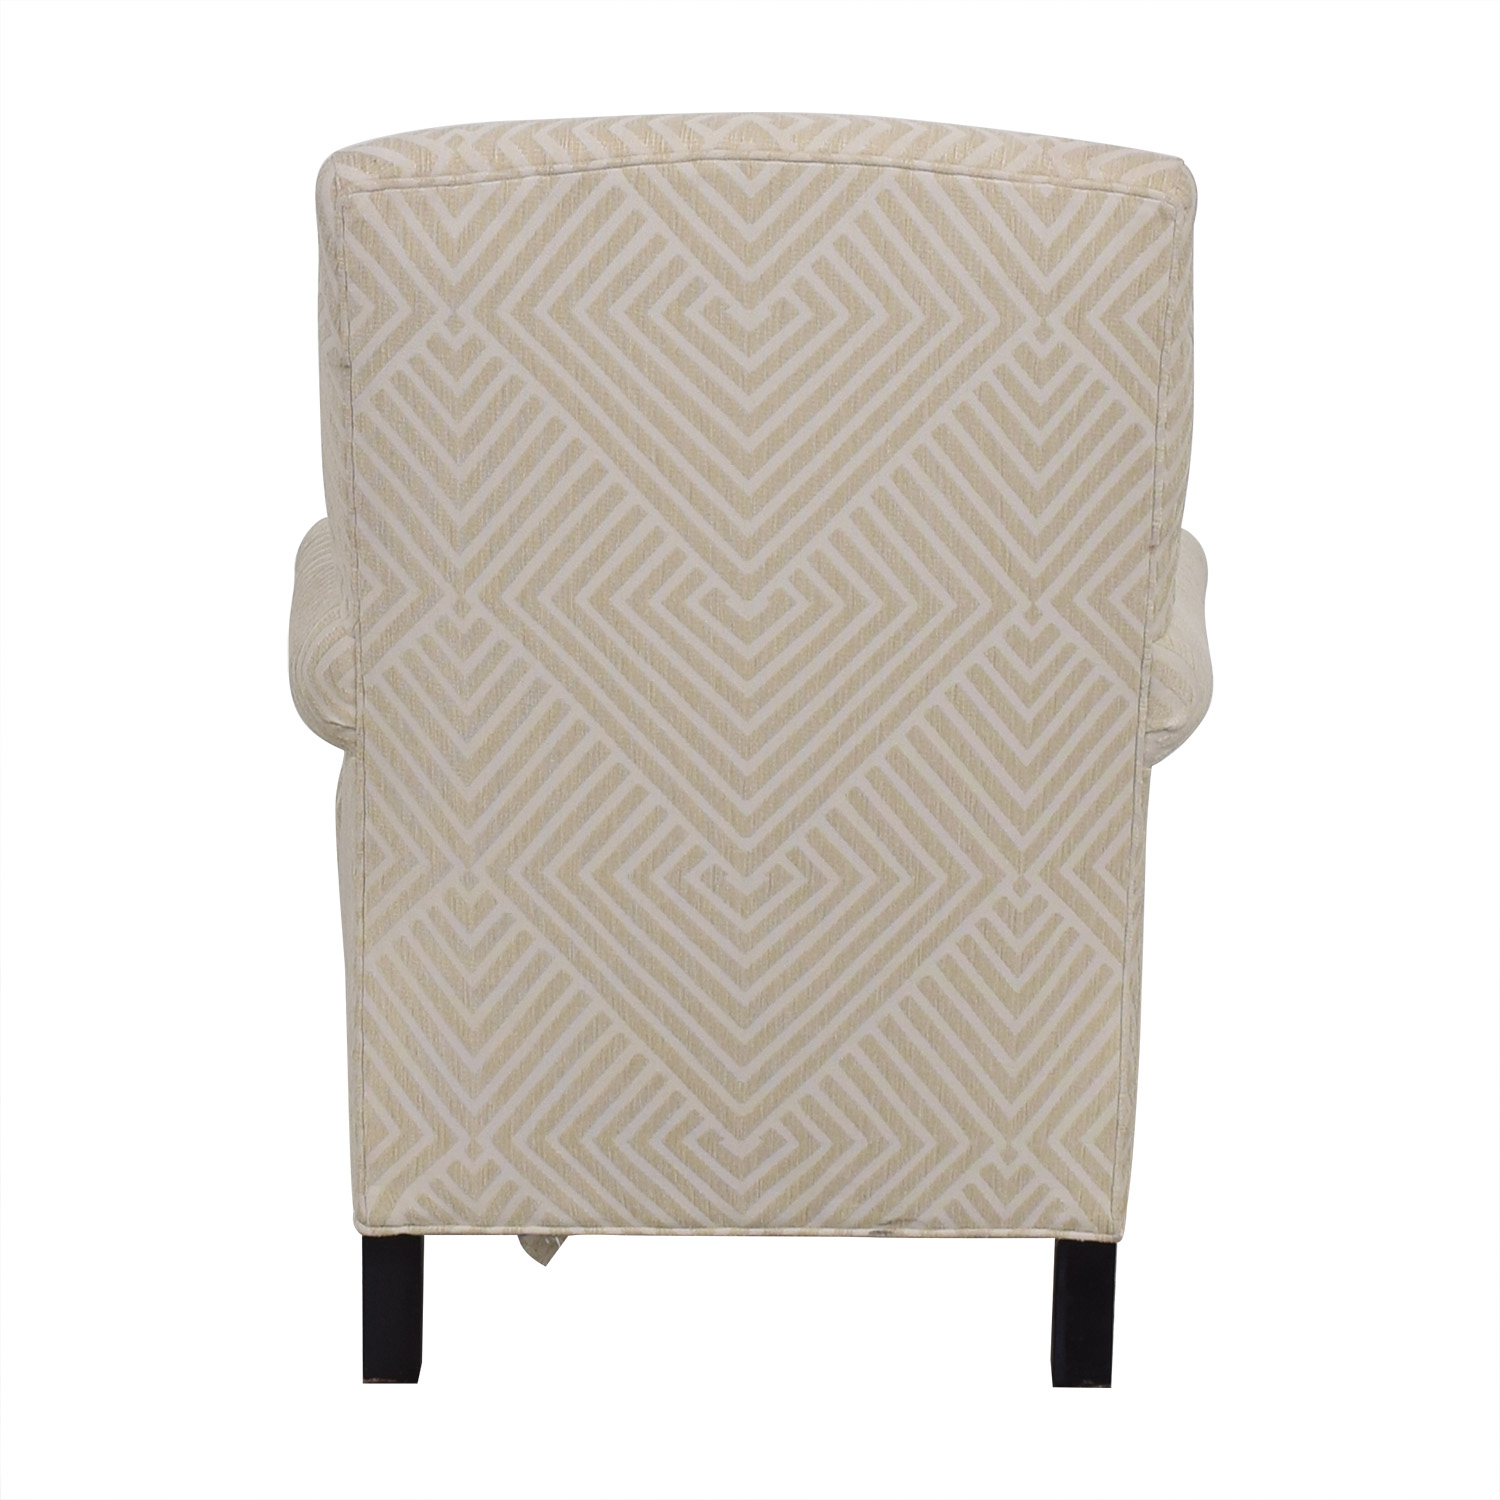 buy Mitchell Gold + Bob Williams Upholstered Armchair Mitchell Gold + Bob Williams Chairs